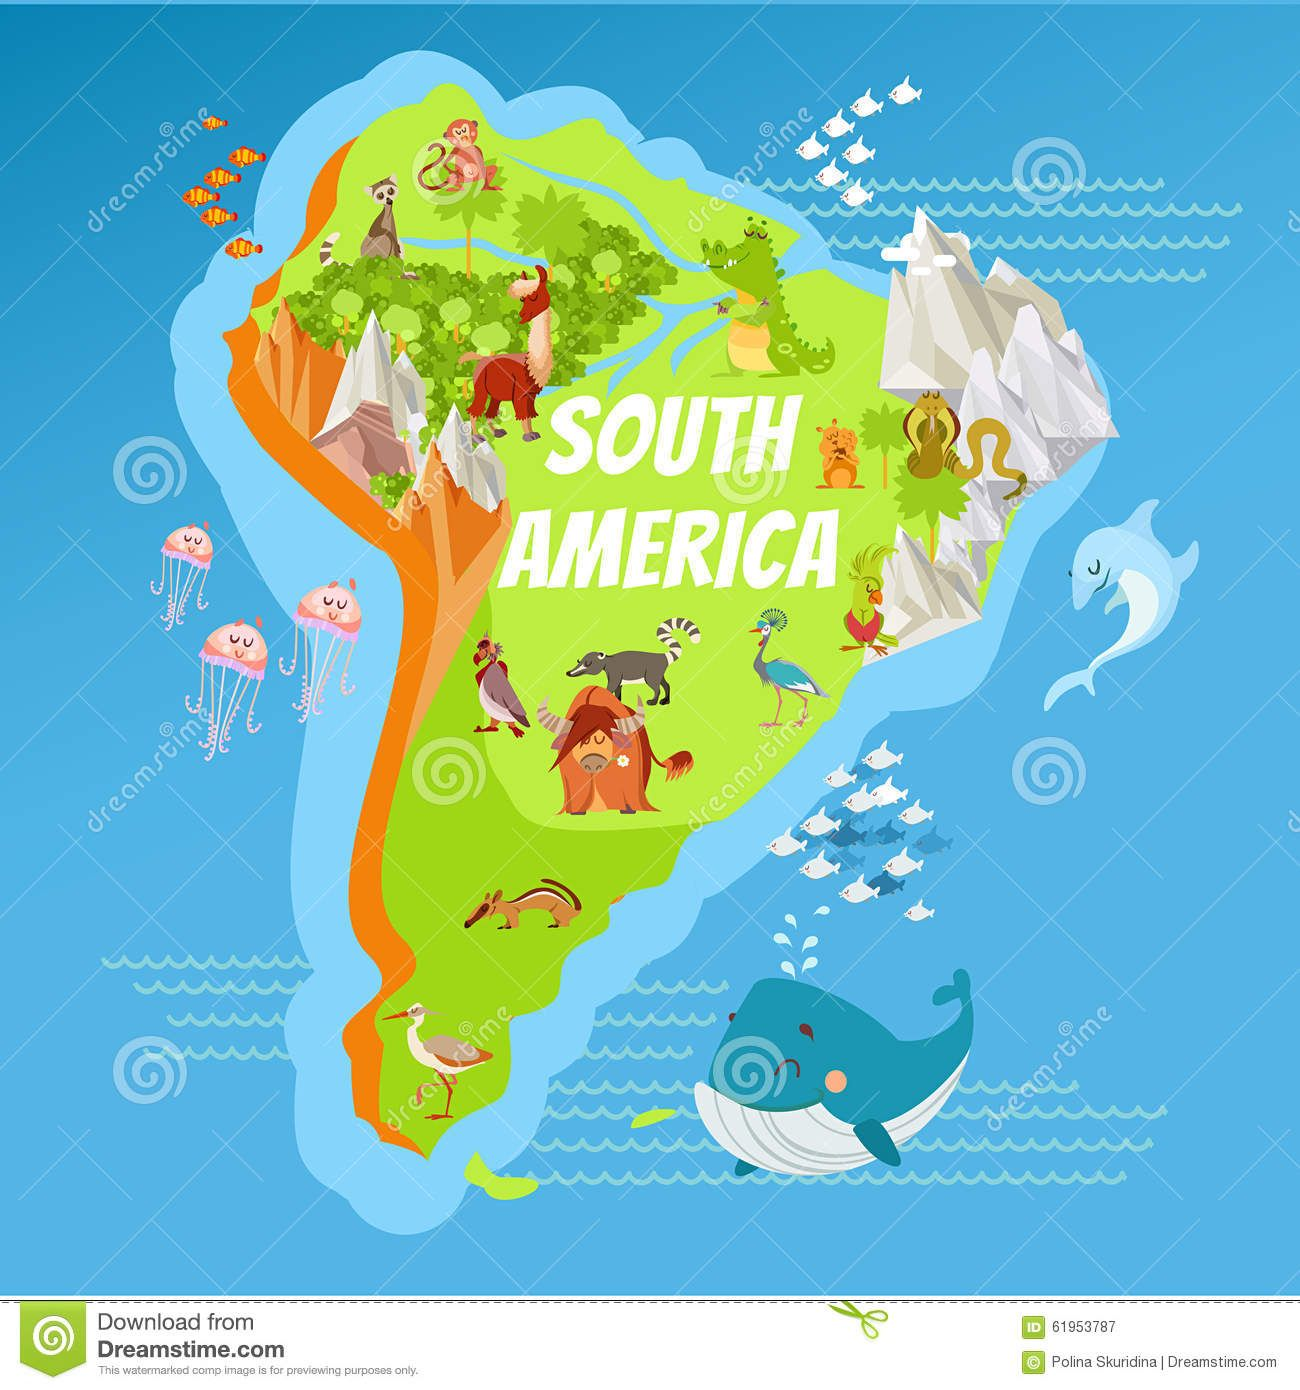 Cartoon south america continent geographic map download from over cartoon south america continent geographic map download from over 44 million high quality stock photos gumiabroncs Image collections